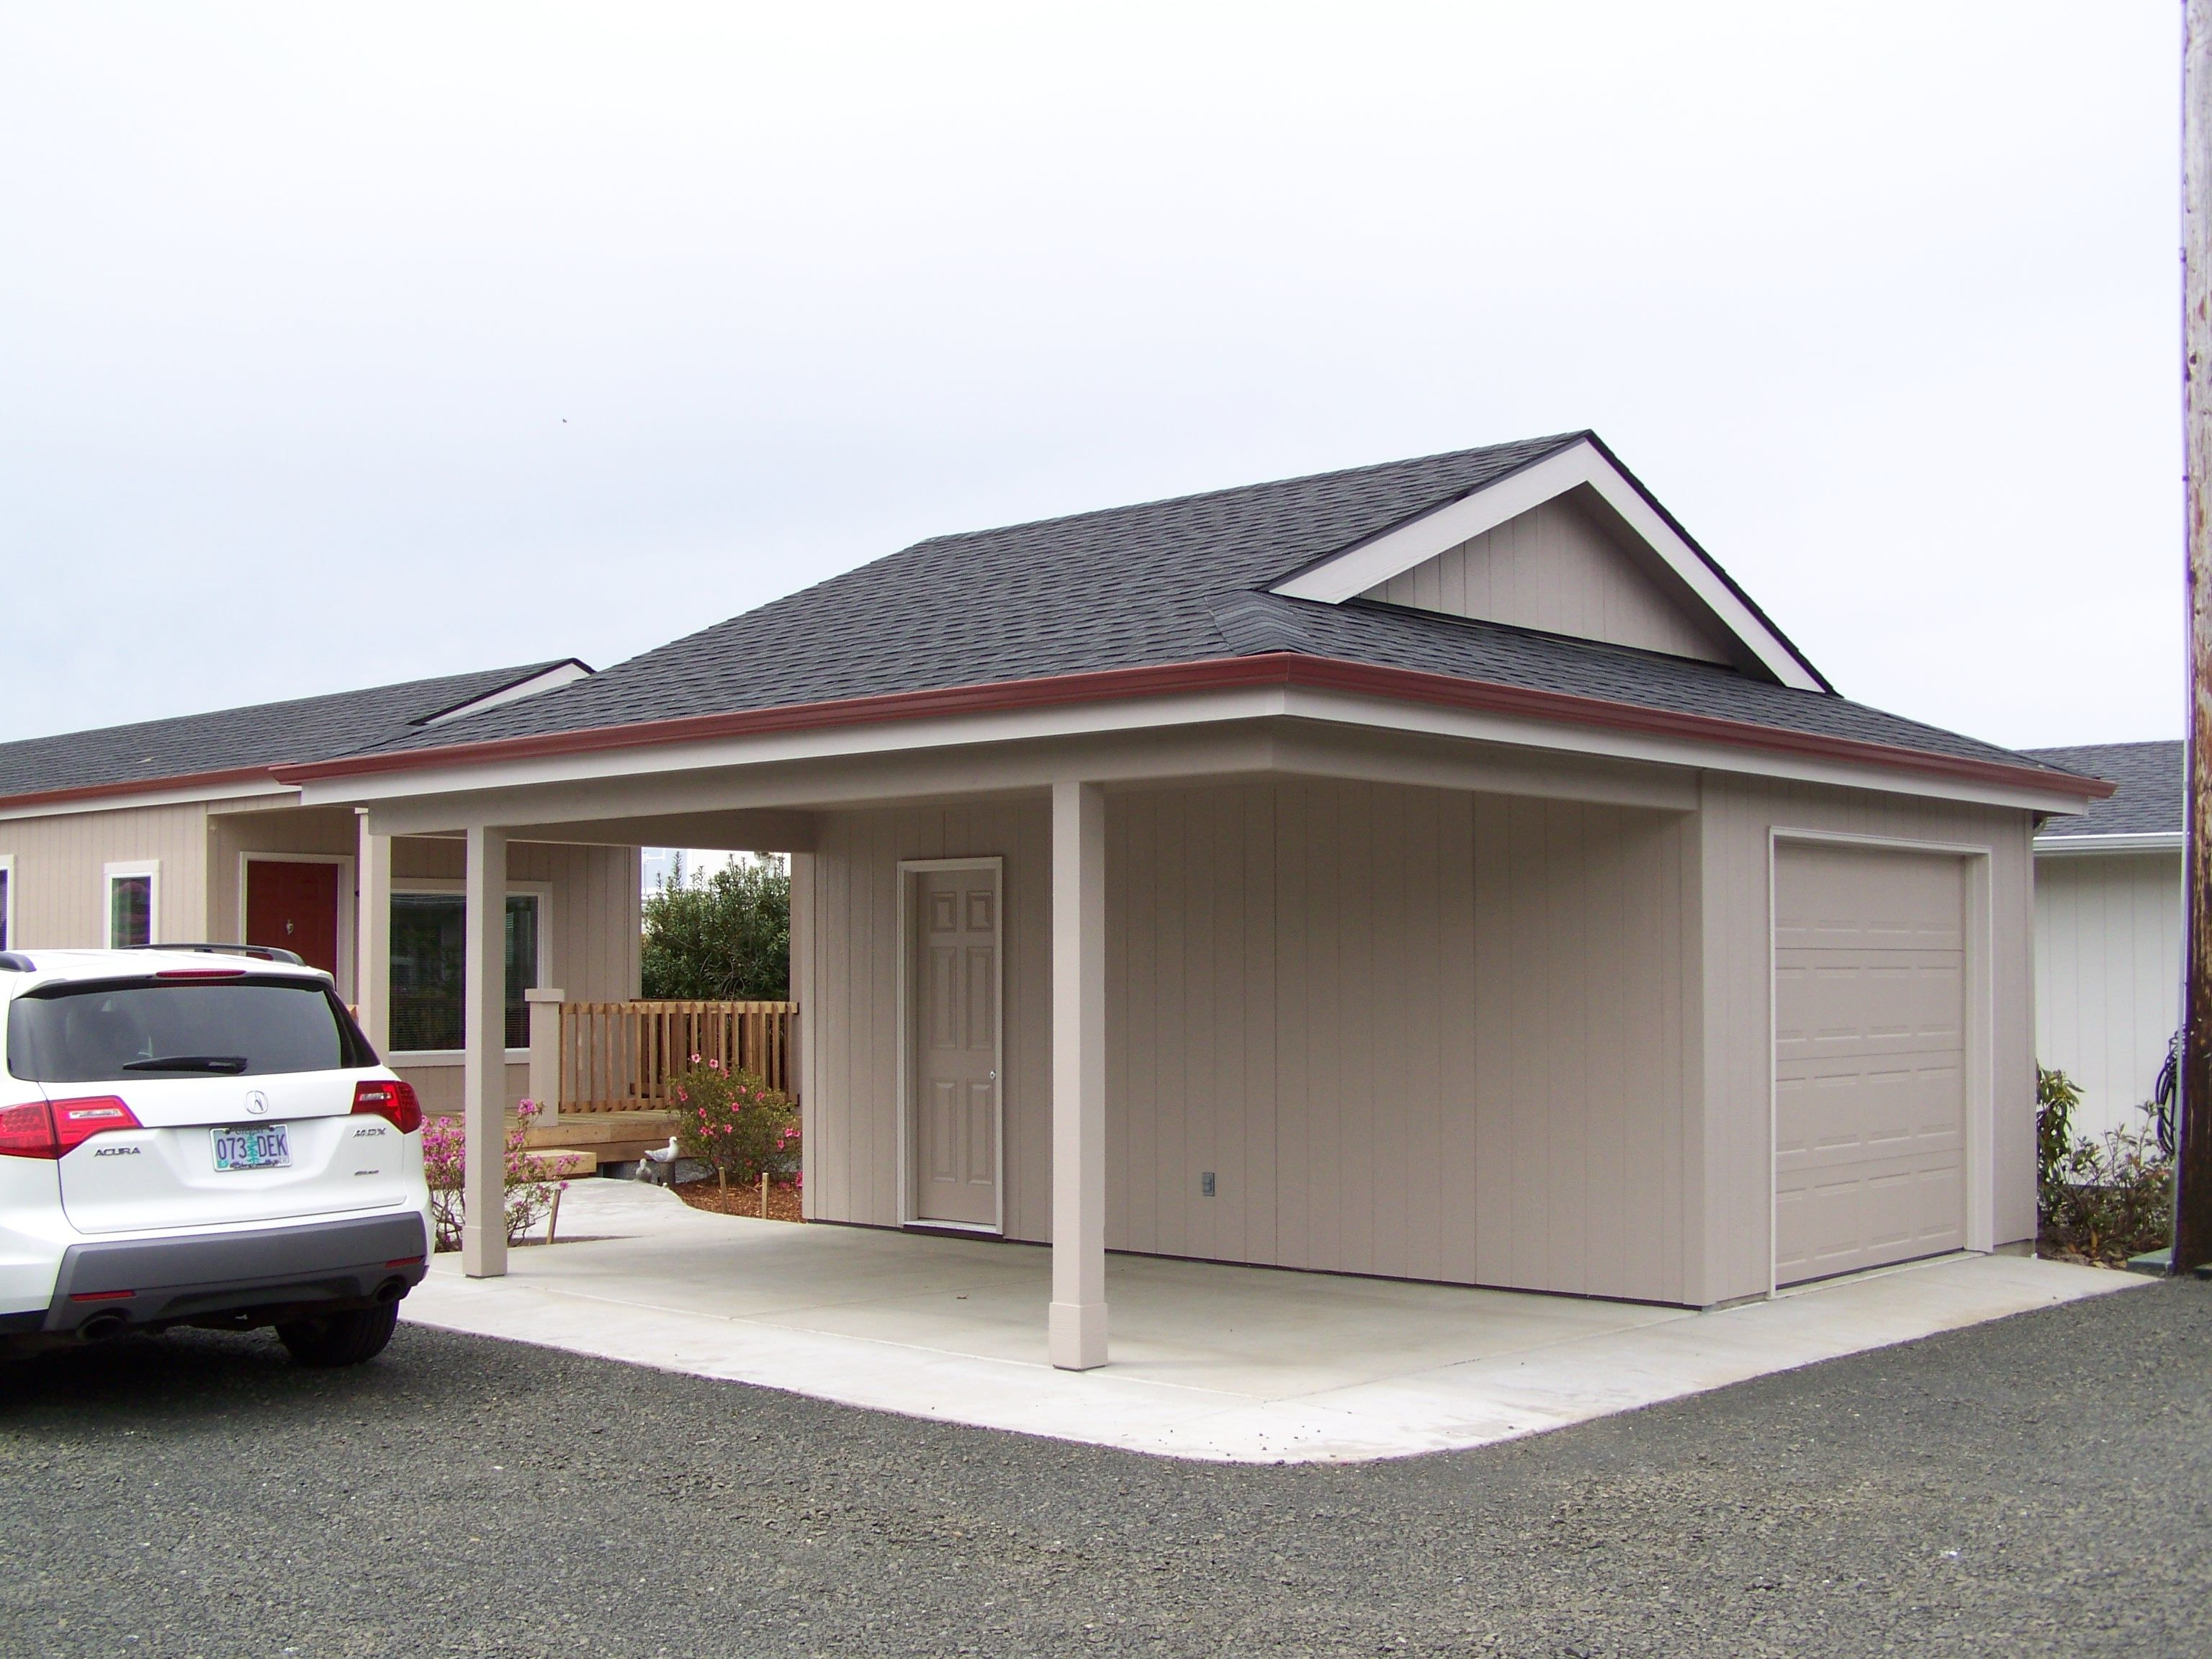 A Garport Half Garage Half Carport Get More Information About This Or Other Plans At Cdihomeplans Com Or On Garage Door House Carport Garage Garage House